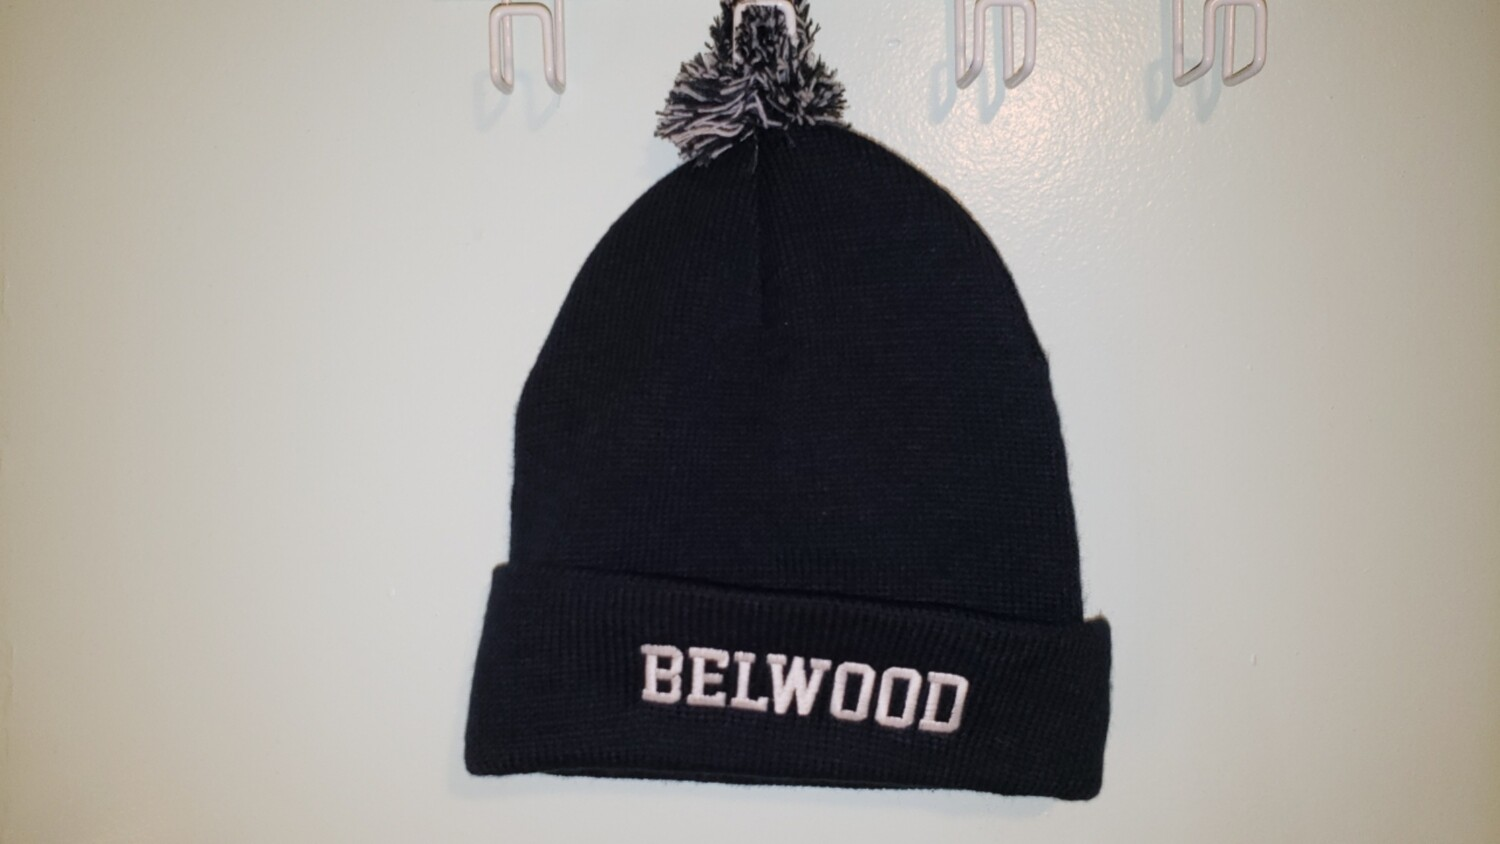 Belwood Toque (Winter Hat)